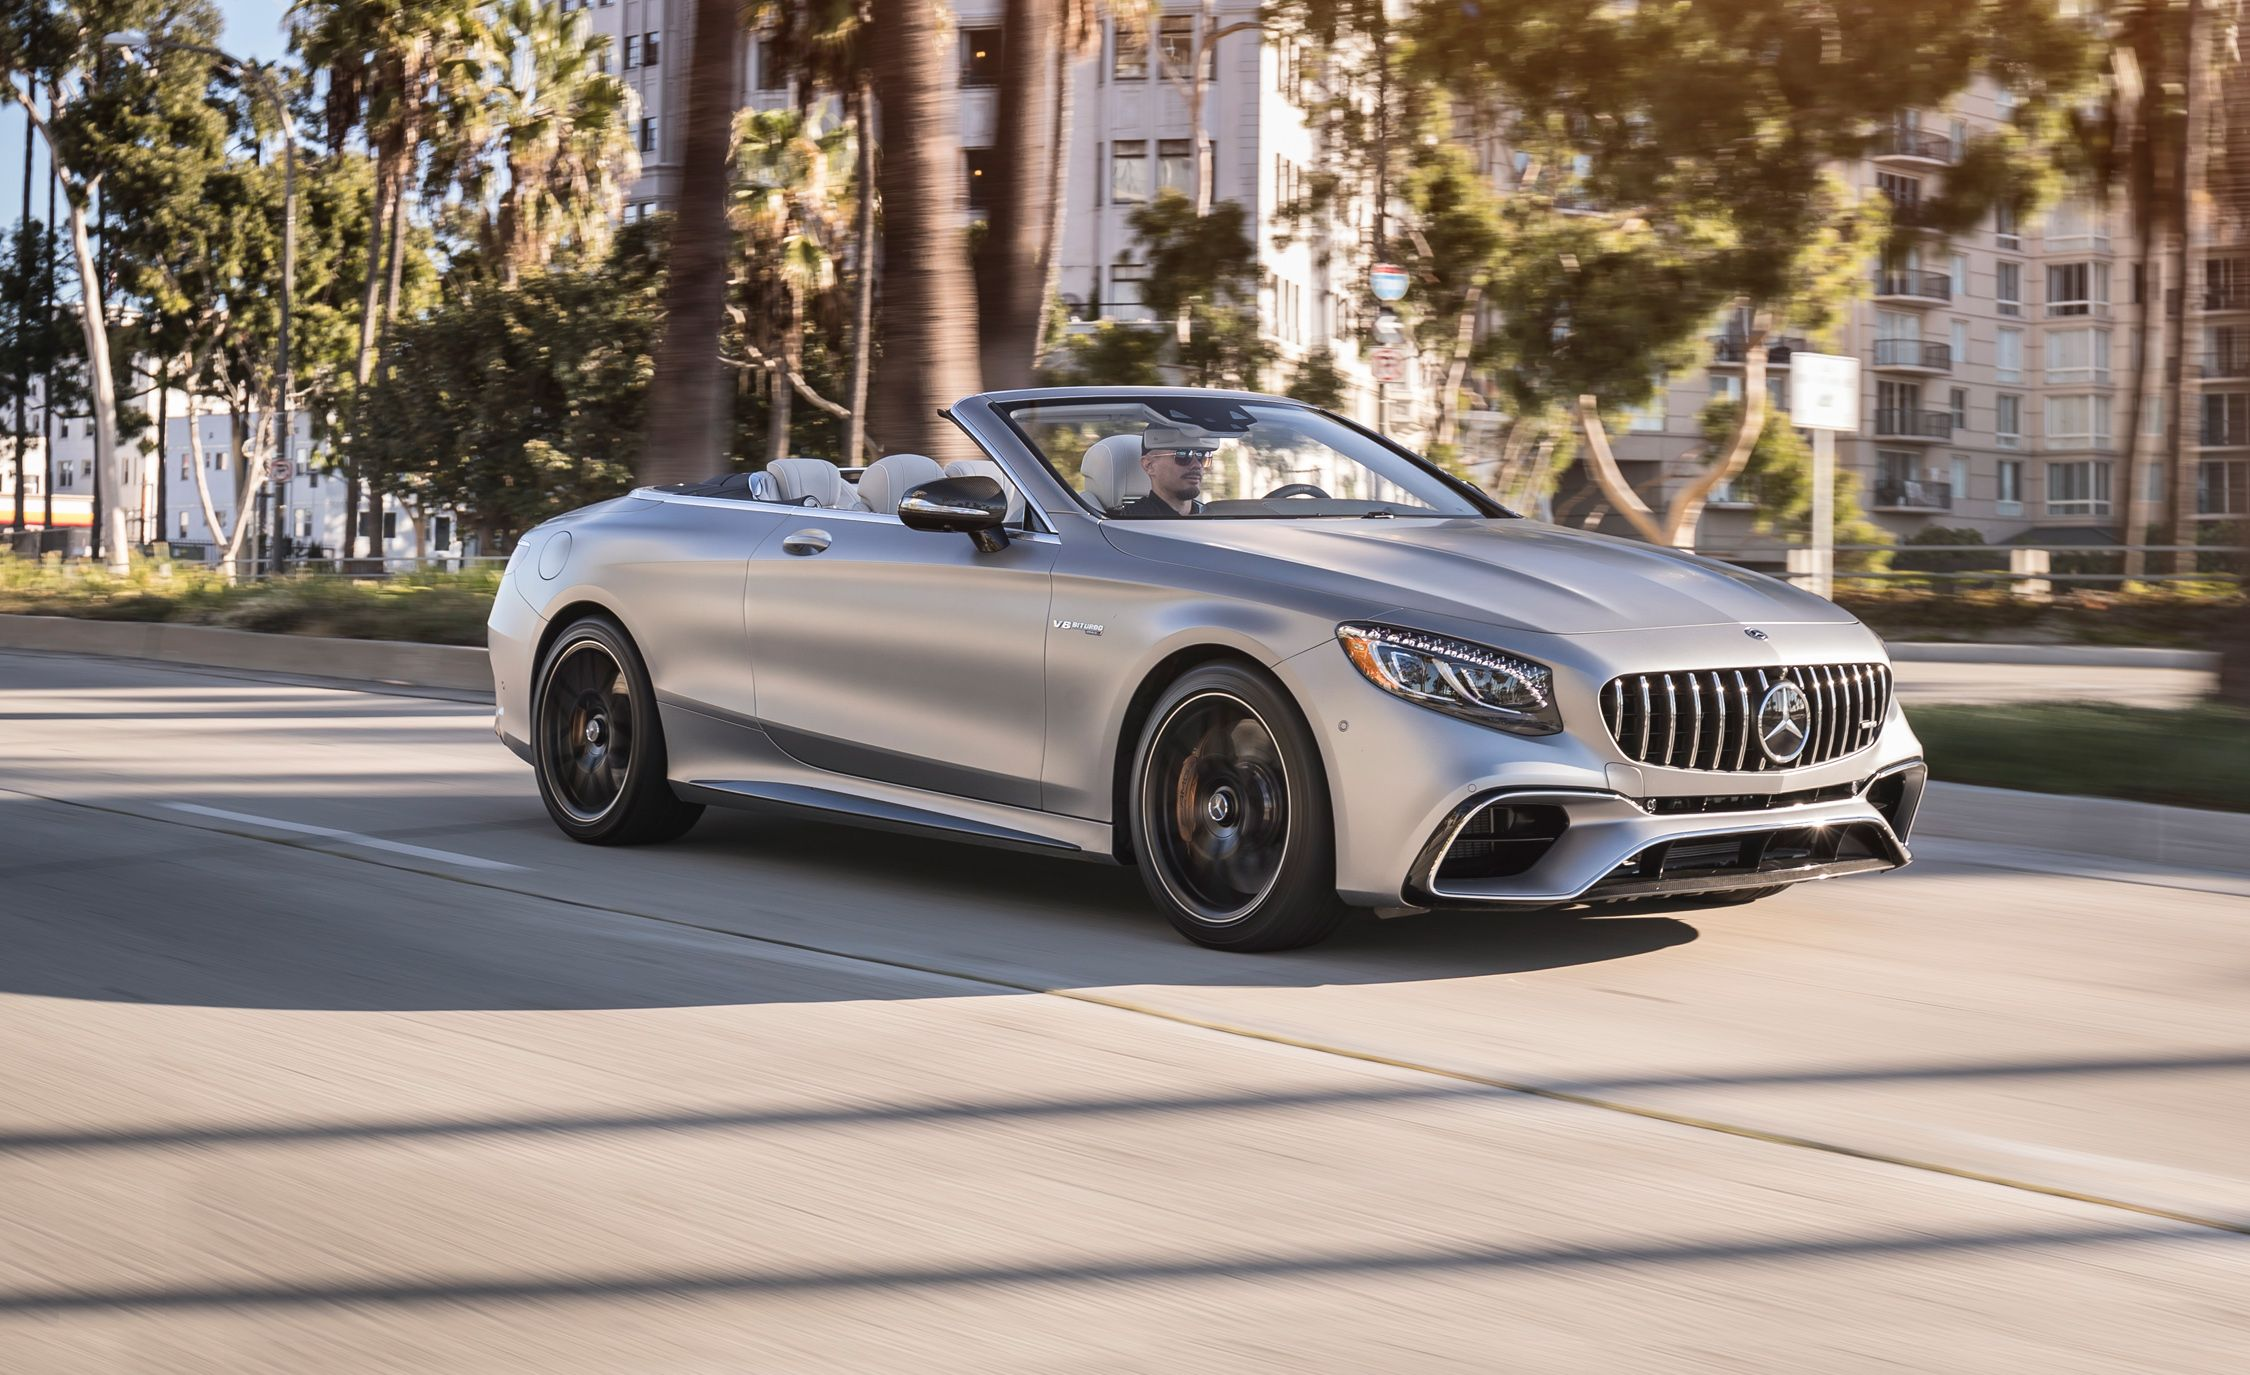 2018 Mercedes-Benz / Mercedes-AMG S-class Coupe and Cabriolet